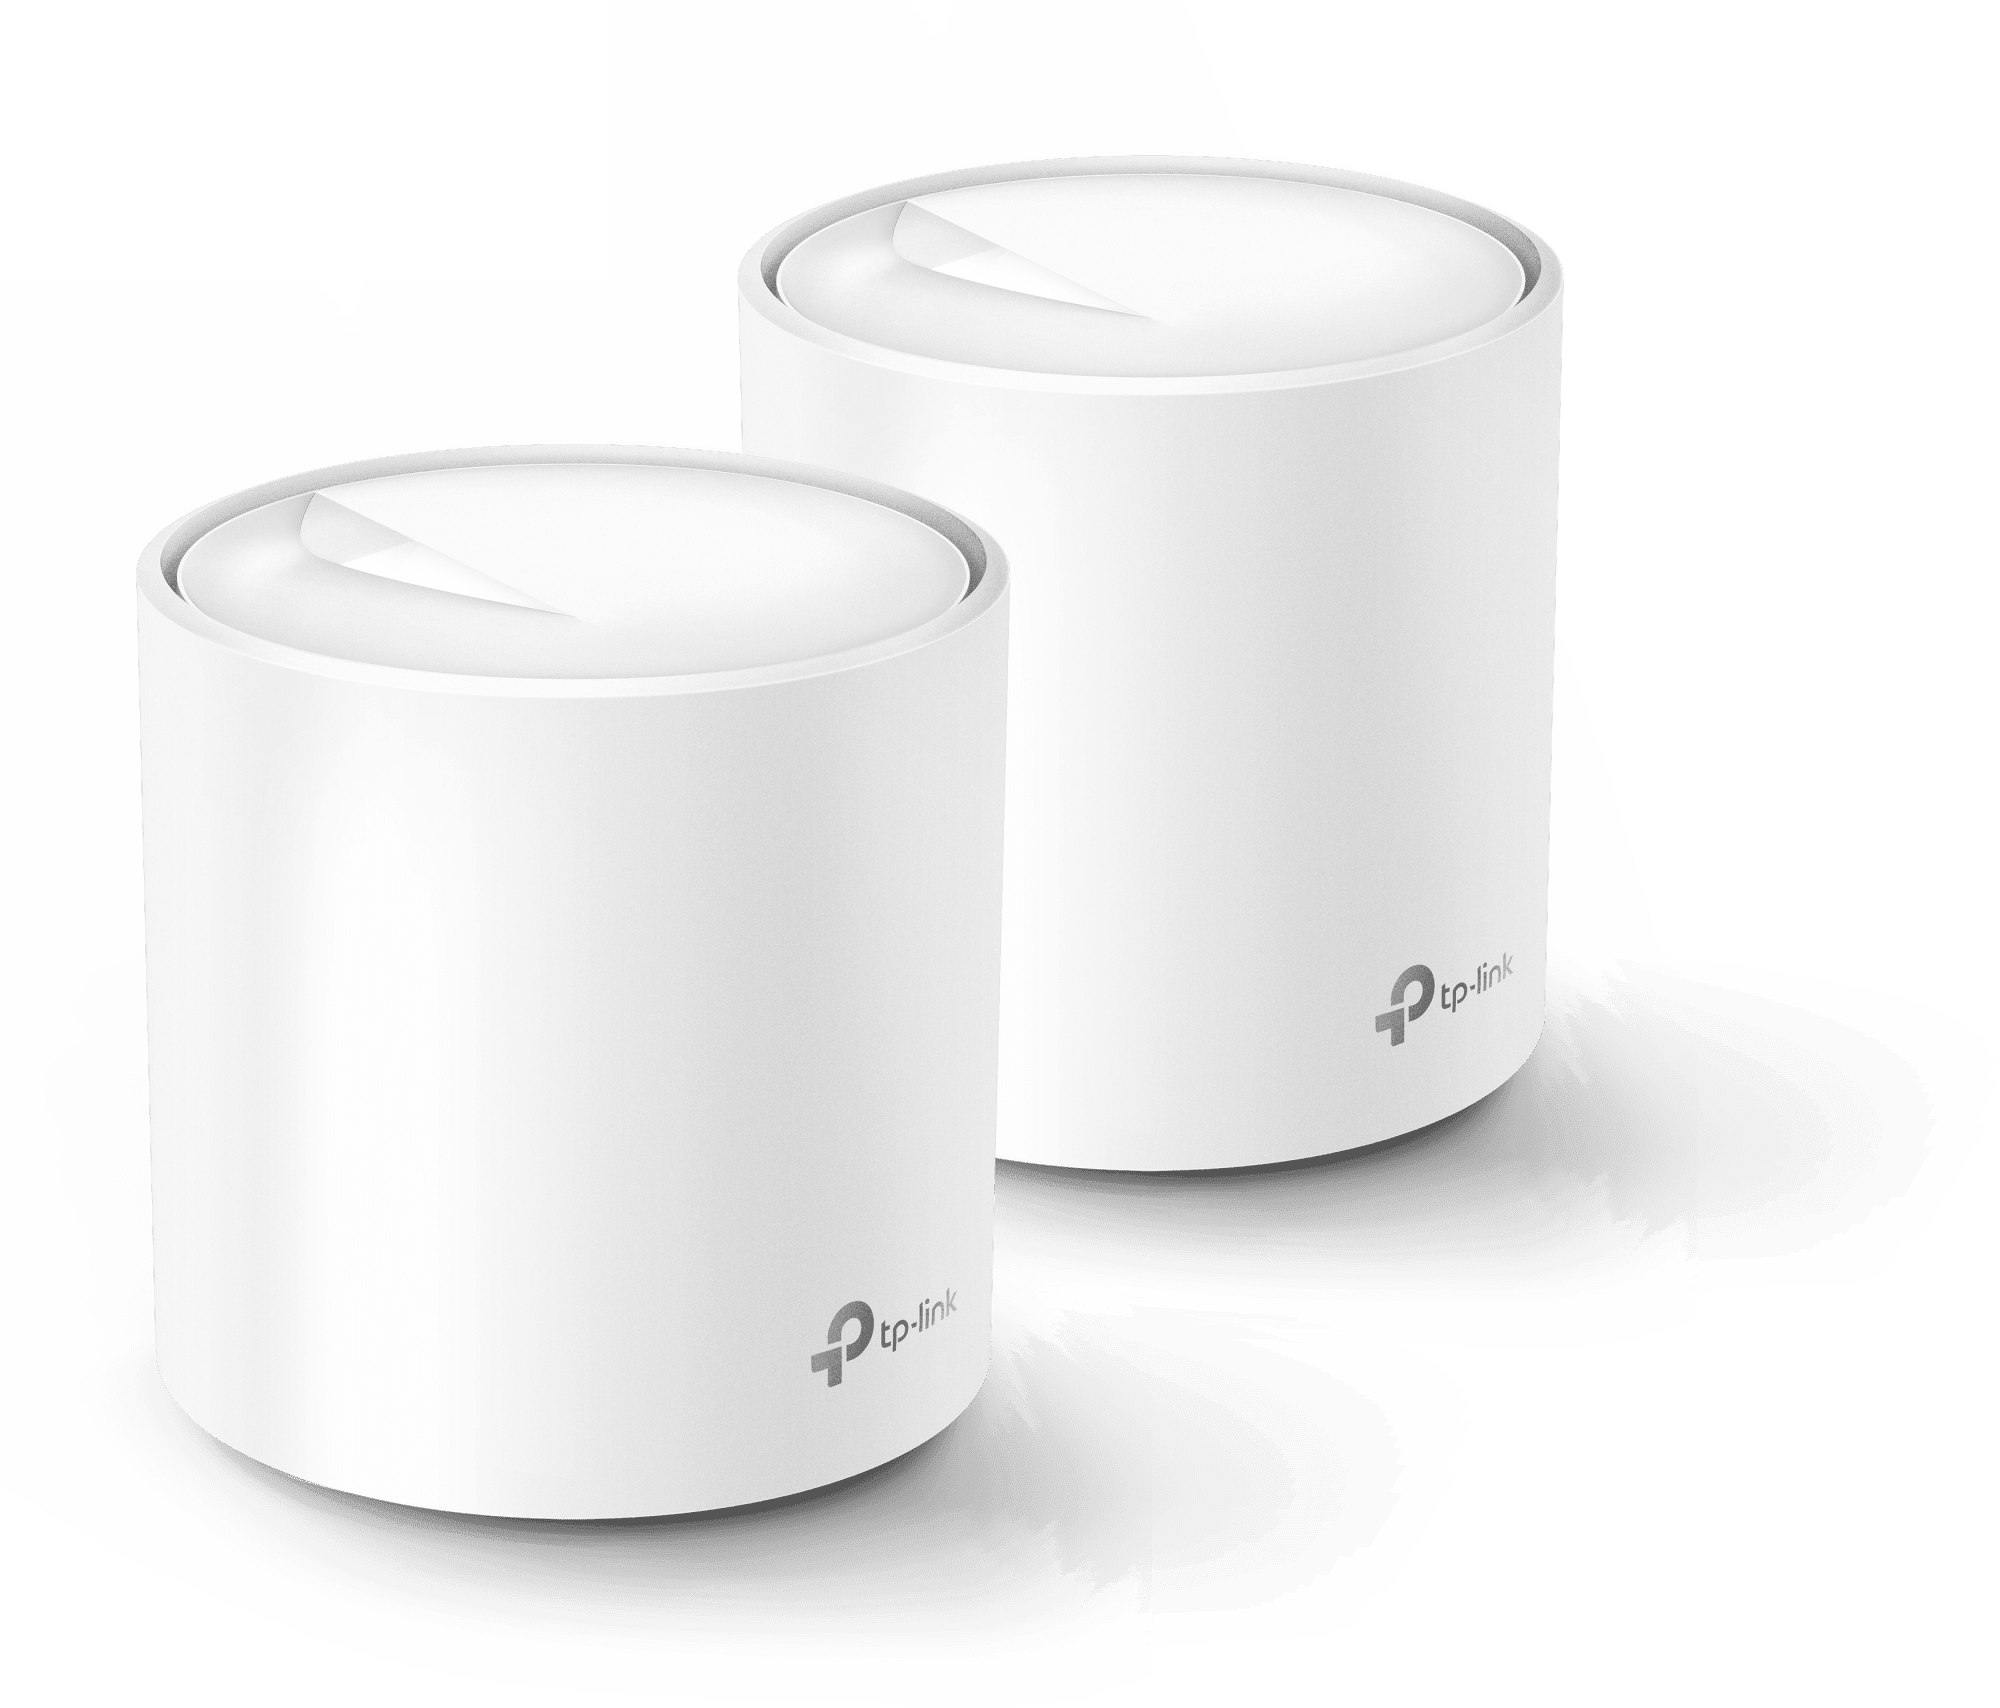 TP-Link adds WiFi 6 to its affordable mesh routers